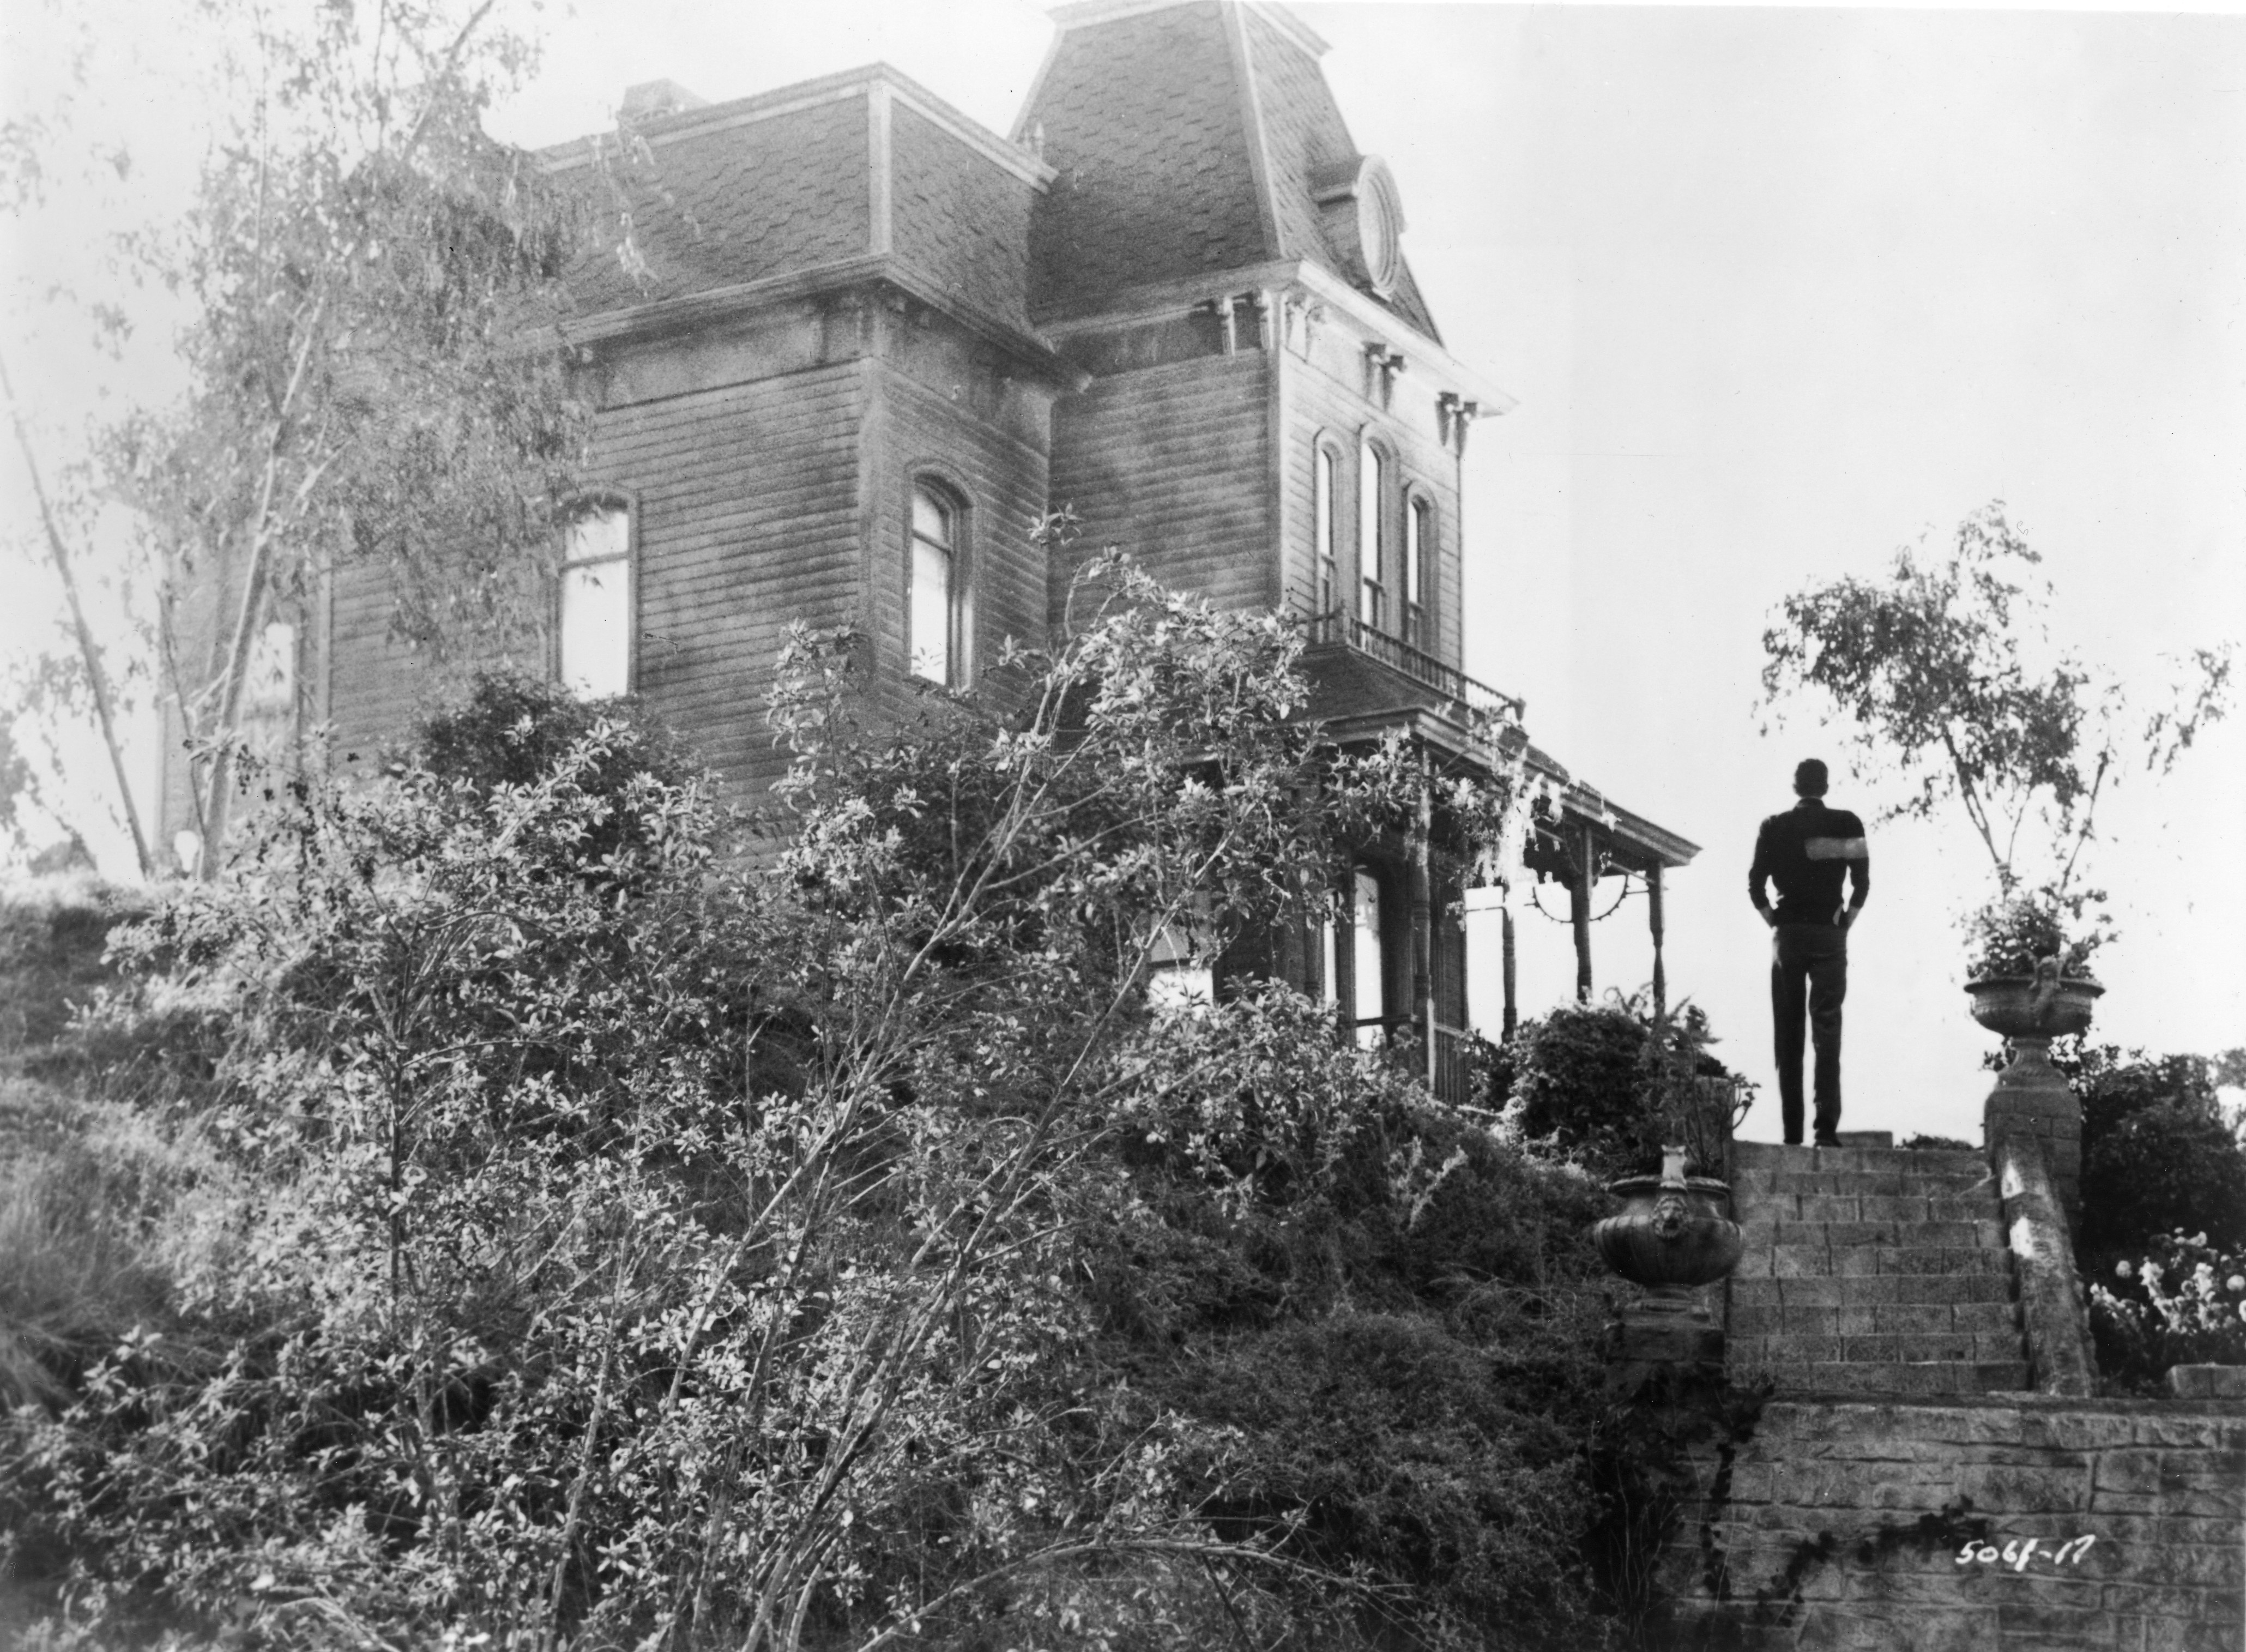 Anthony Perkins & Bates Motel In 'Psycho'